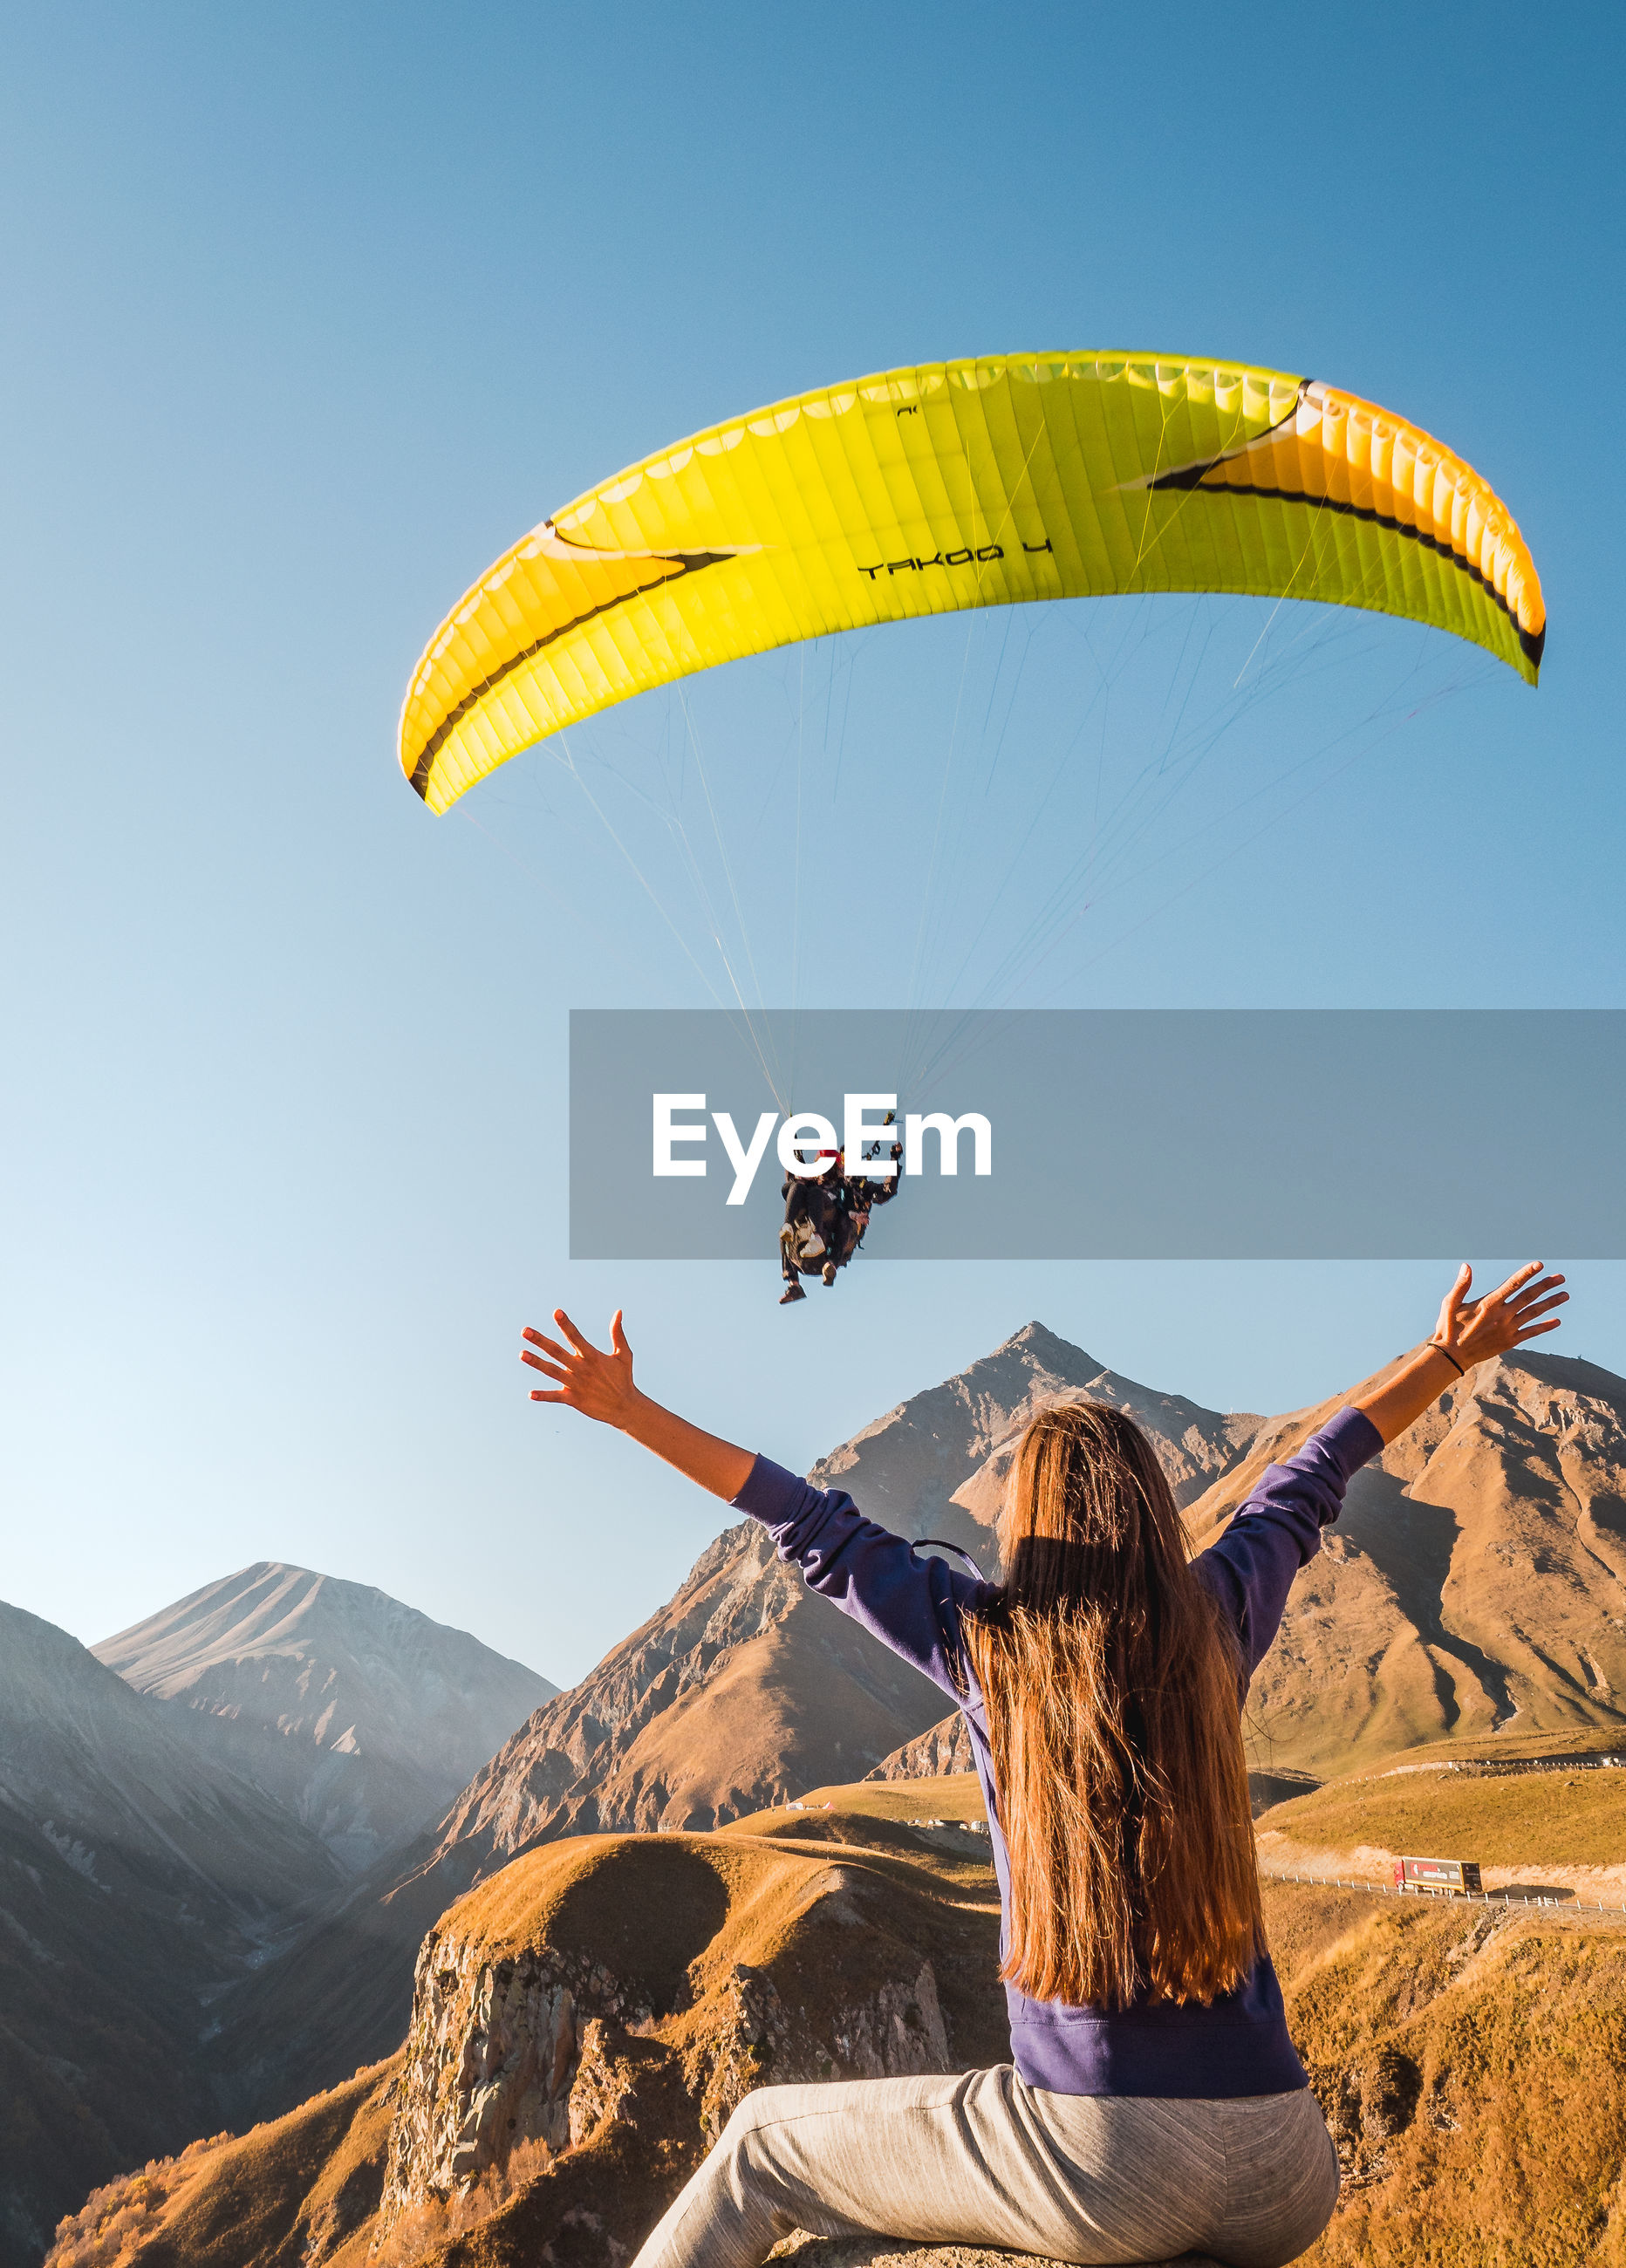 REAR VIEW OF PERSON PARAGLIDING AGAINST MOUNTAINS